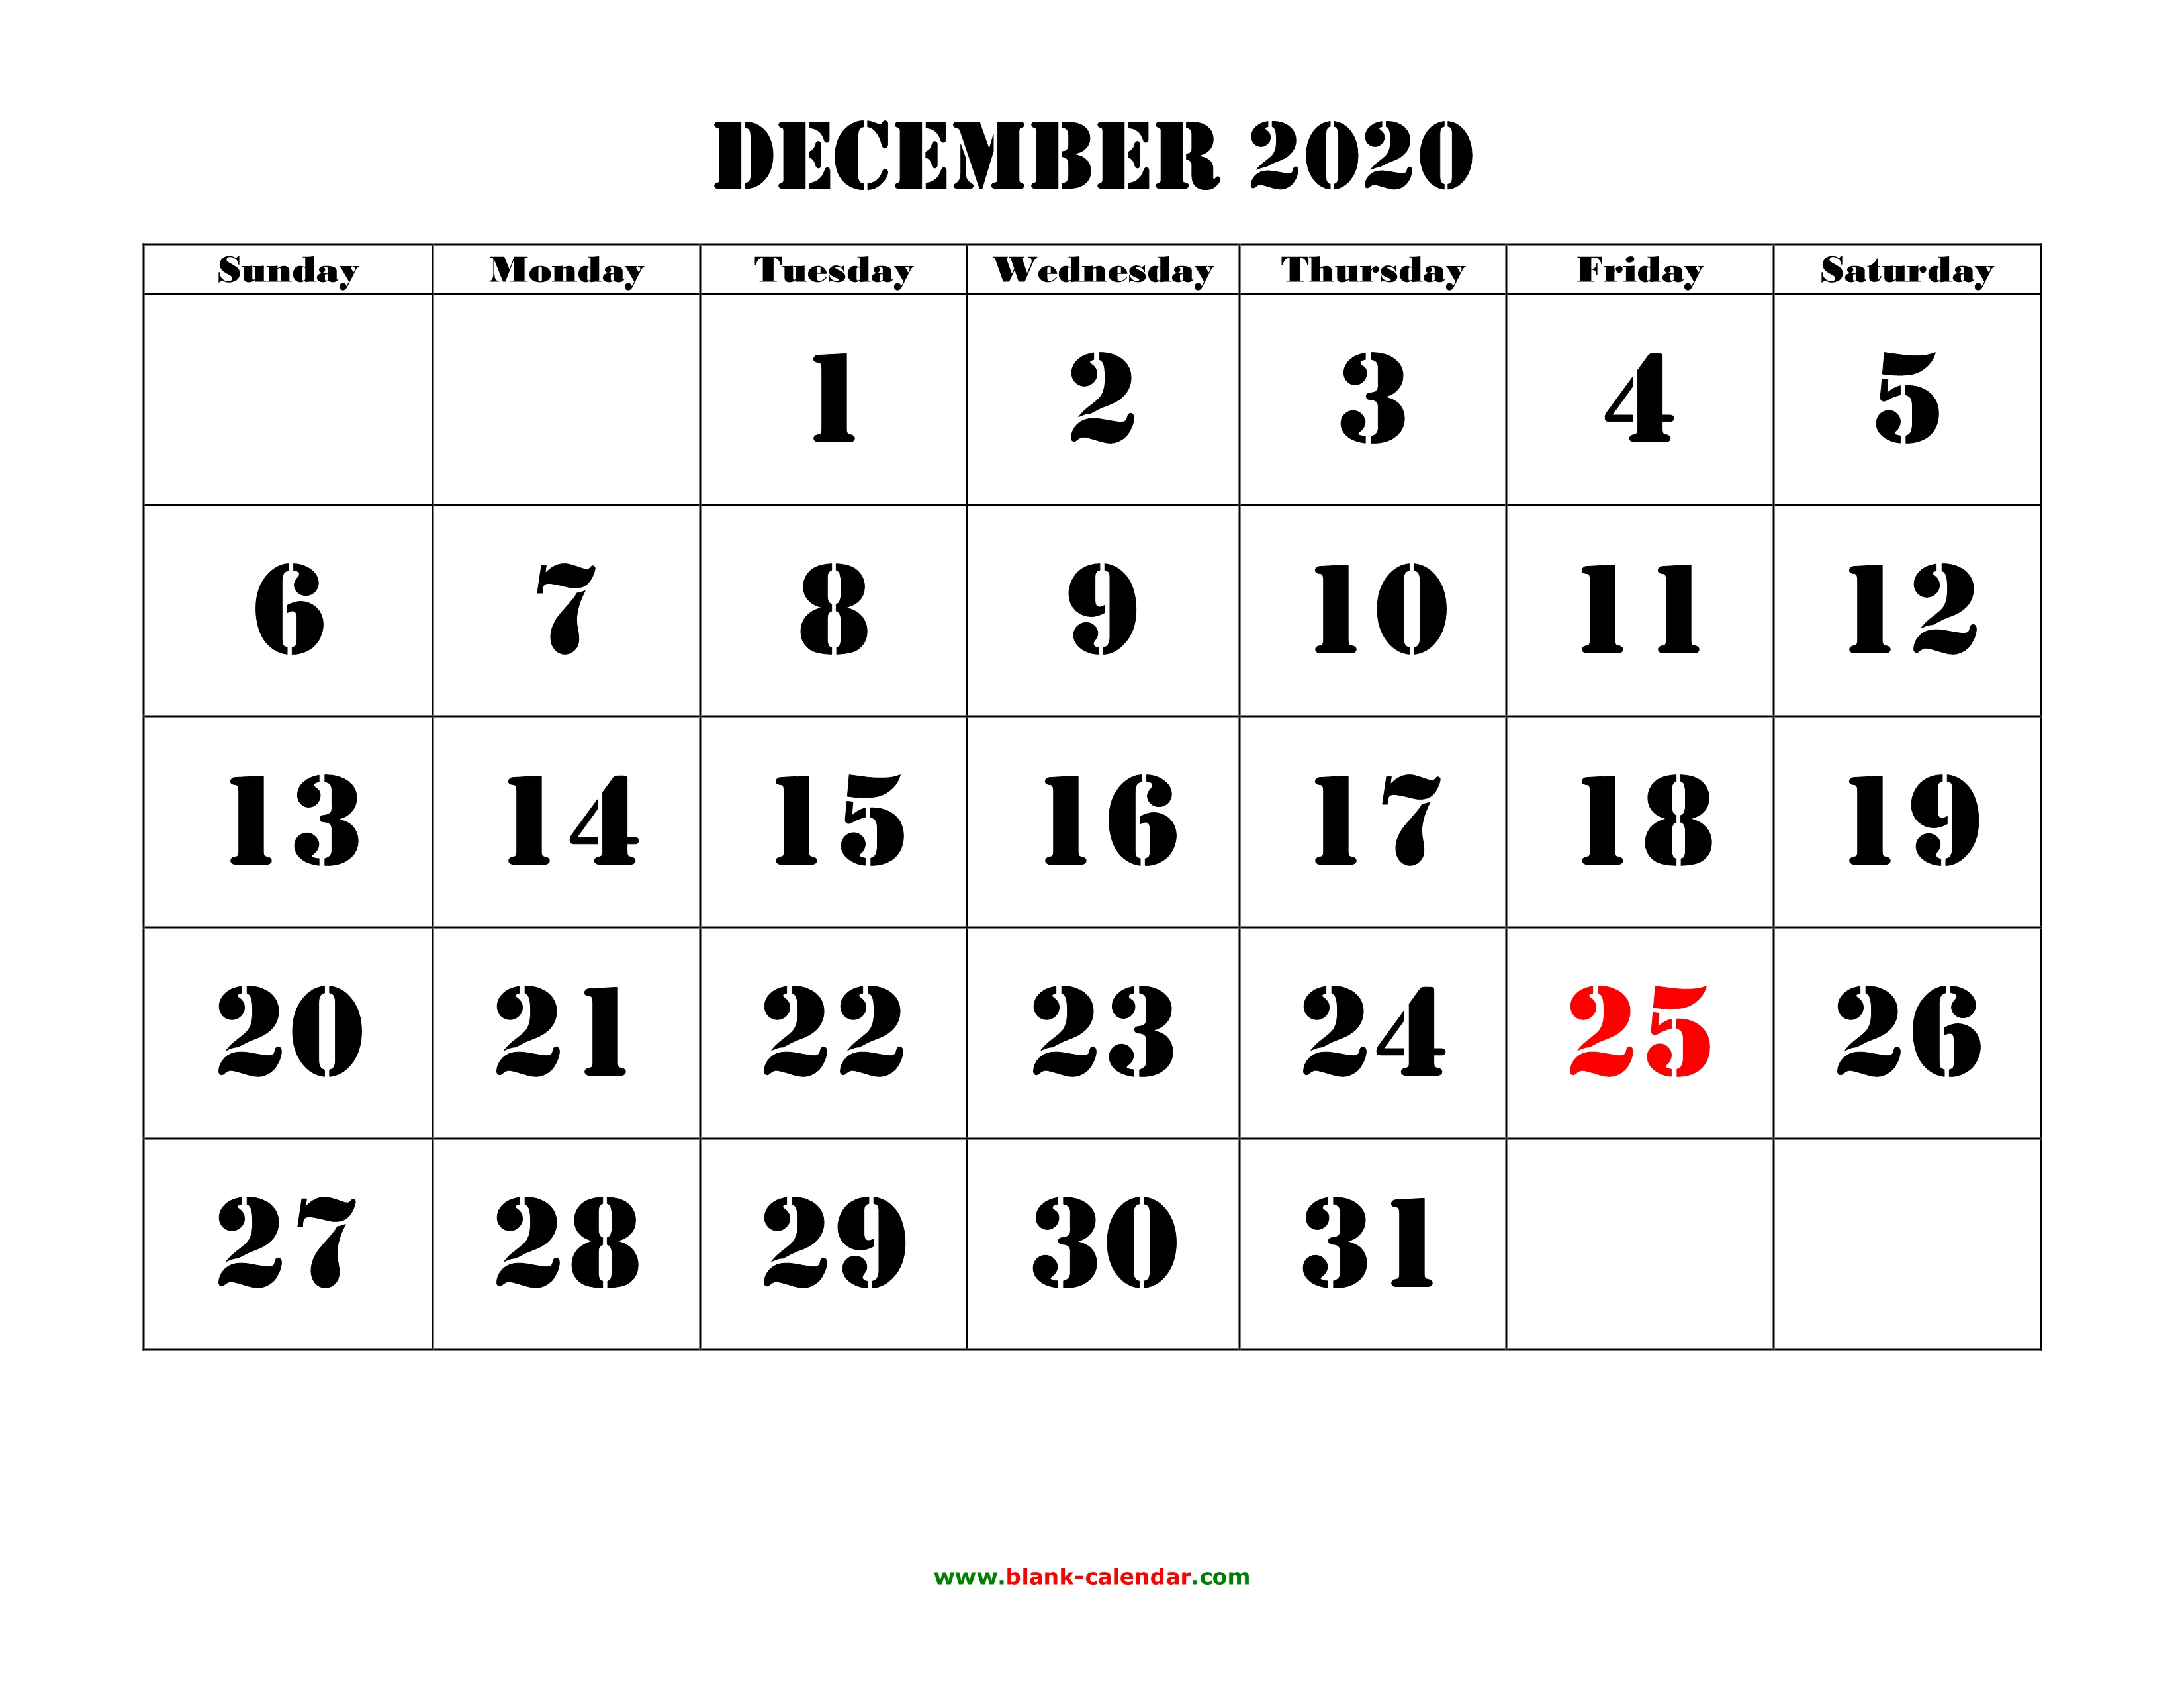 Free Printable Calendar Fornovember And December 2020 With Holidays December 2020 Printable Calendar | Free Download Monthly Calendar